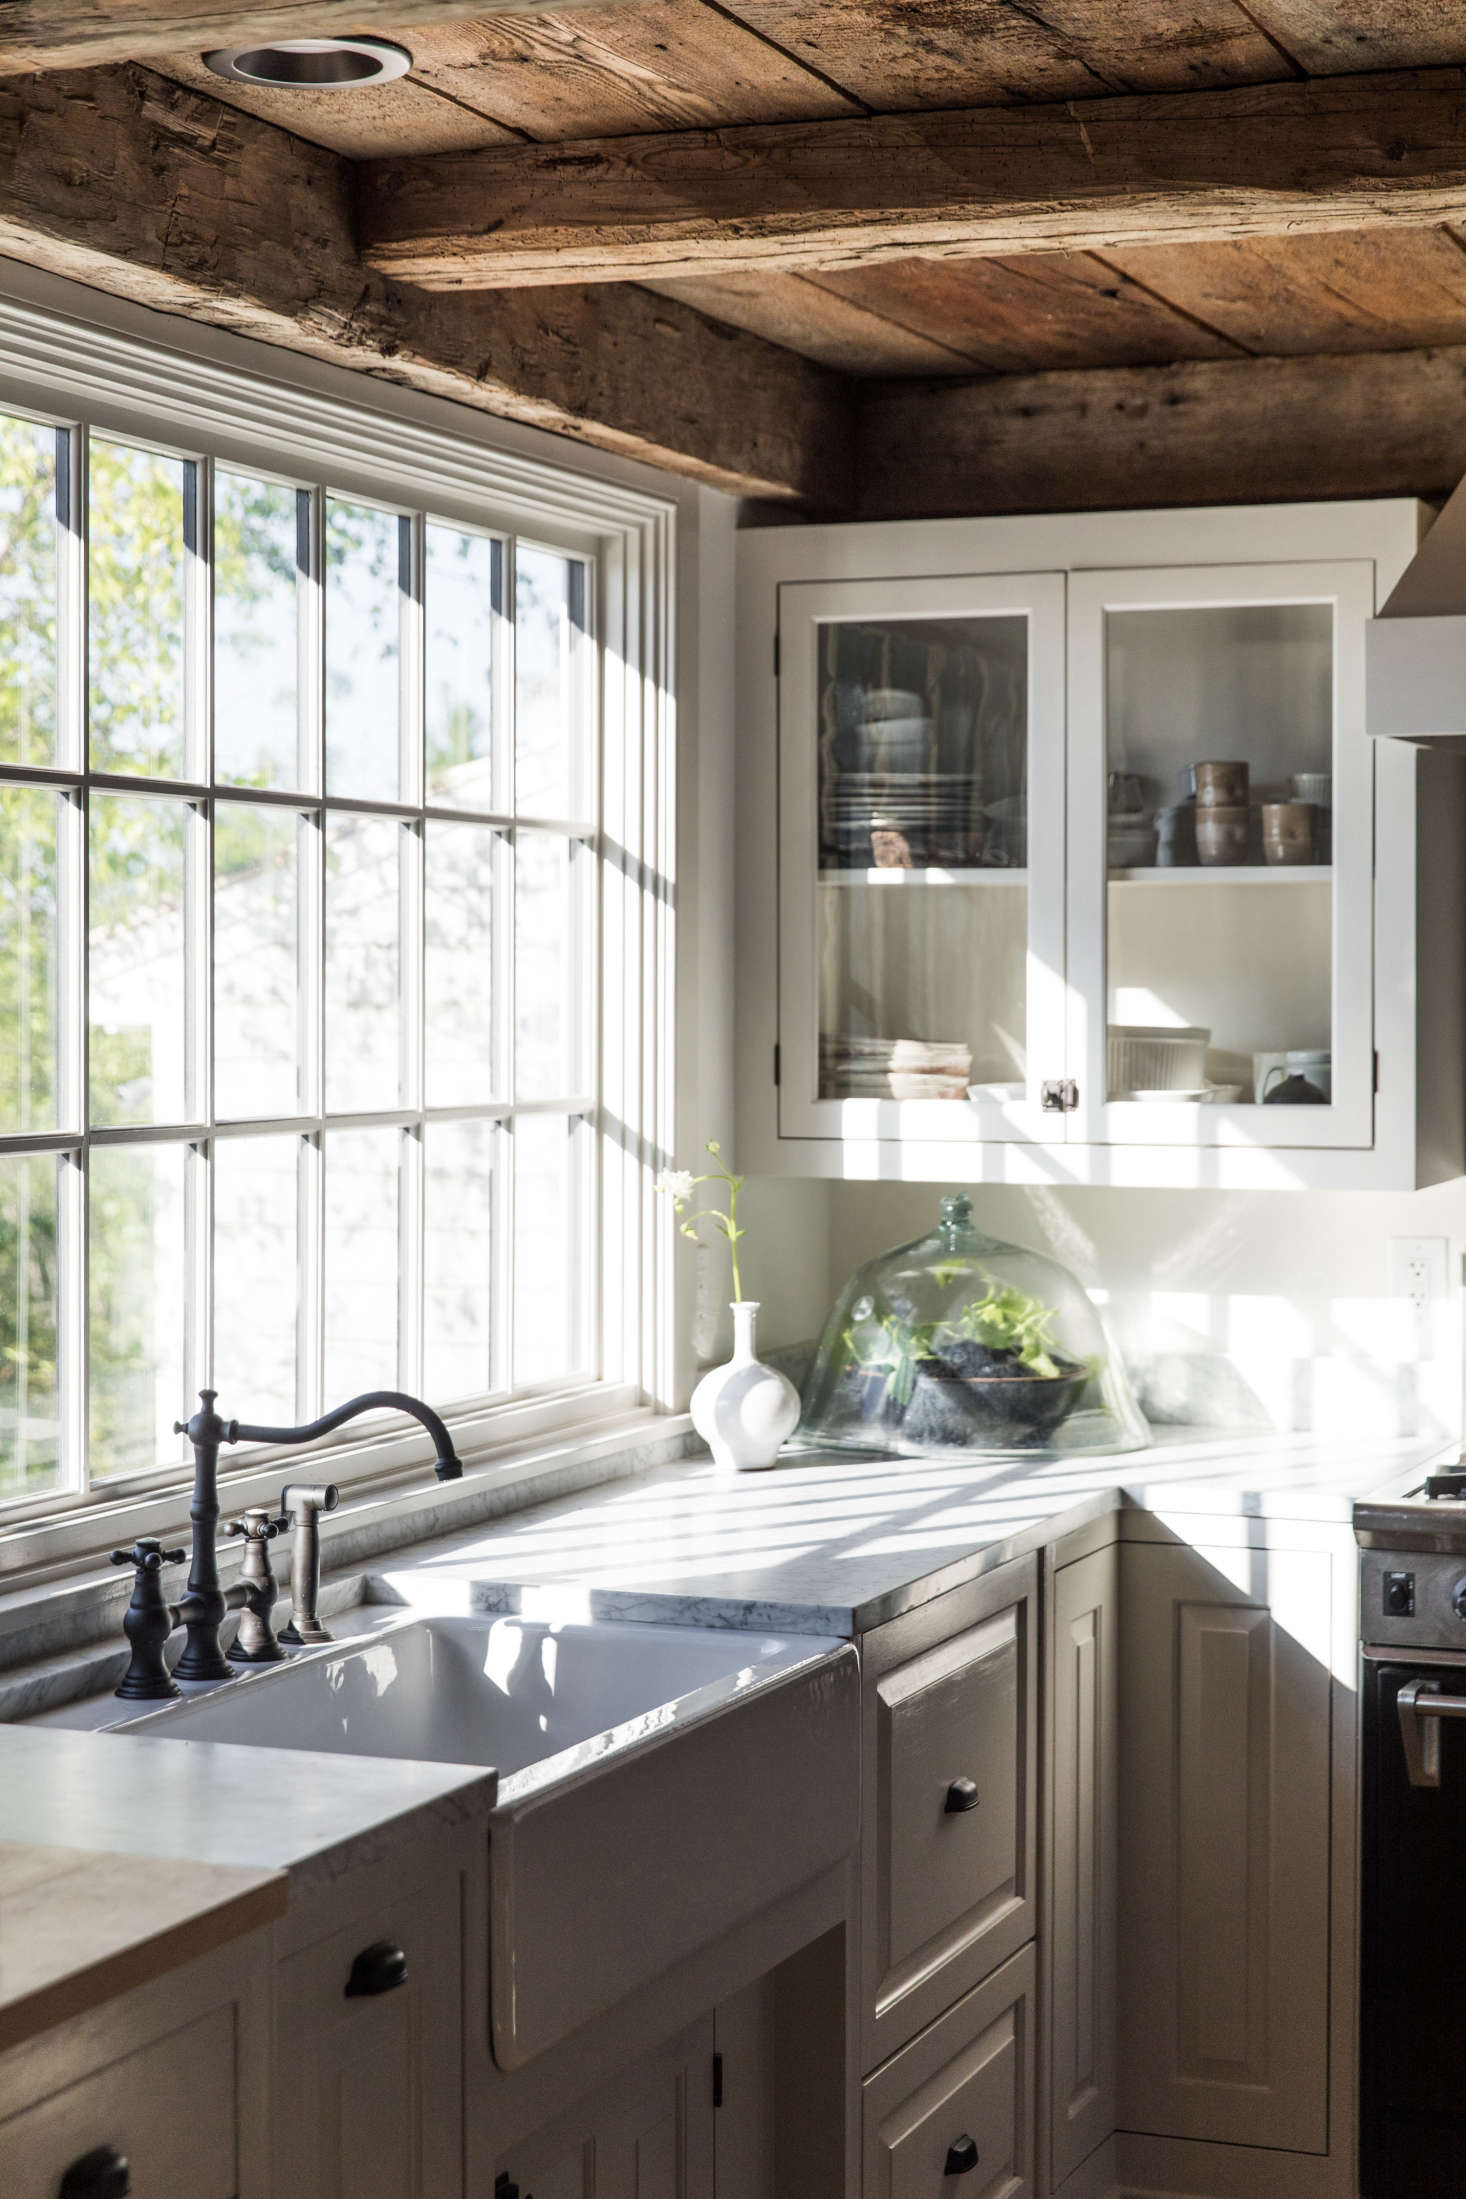 Esteves chose a mix of Carrara marble and butcher block for the countertops and sourced an apron-front sink from Kohler Dickinson. The antique glass cloche is French—Esteves picked it up at Marston House on the island of Vinalhaven, Maine. (See our recent post, Marston House in Vinalhaven: French Vintage Style in Maine, for a full look.)